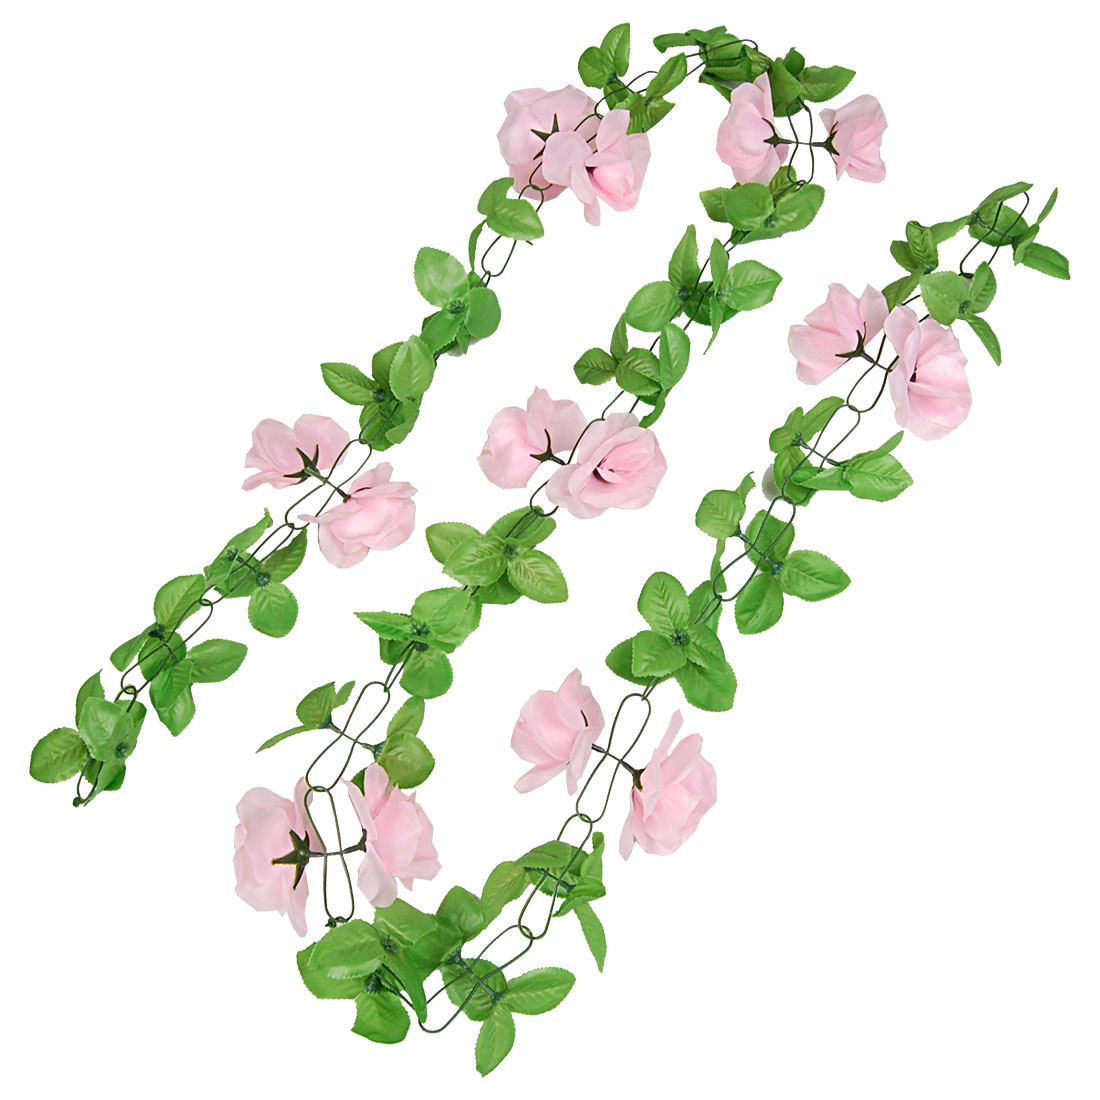 Festivals Wedding Green Leaf Fabric Pink Roses Artificial Hanging Bouquet 2.4M